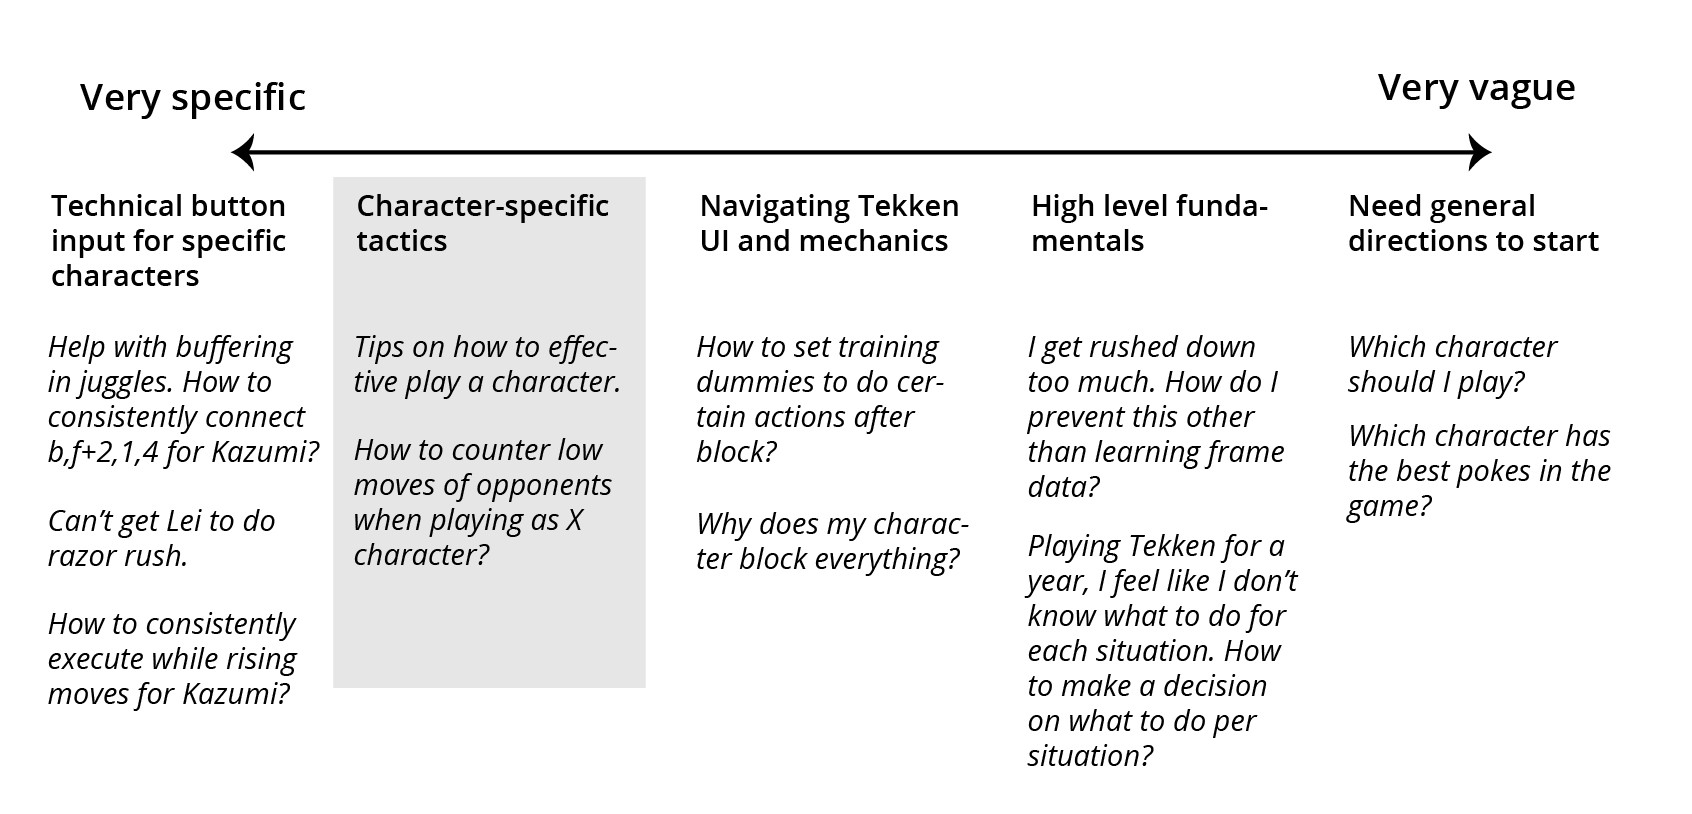 Summary of the sticky notes, shows 5 columns of questions players tend to ask when learning Tekken.